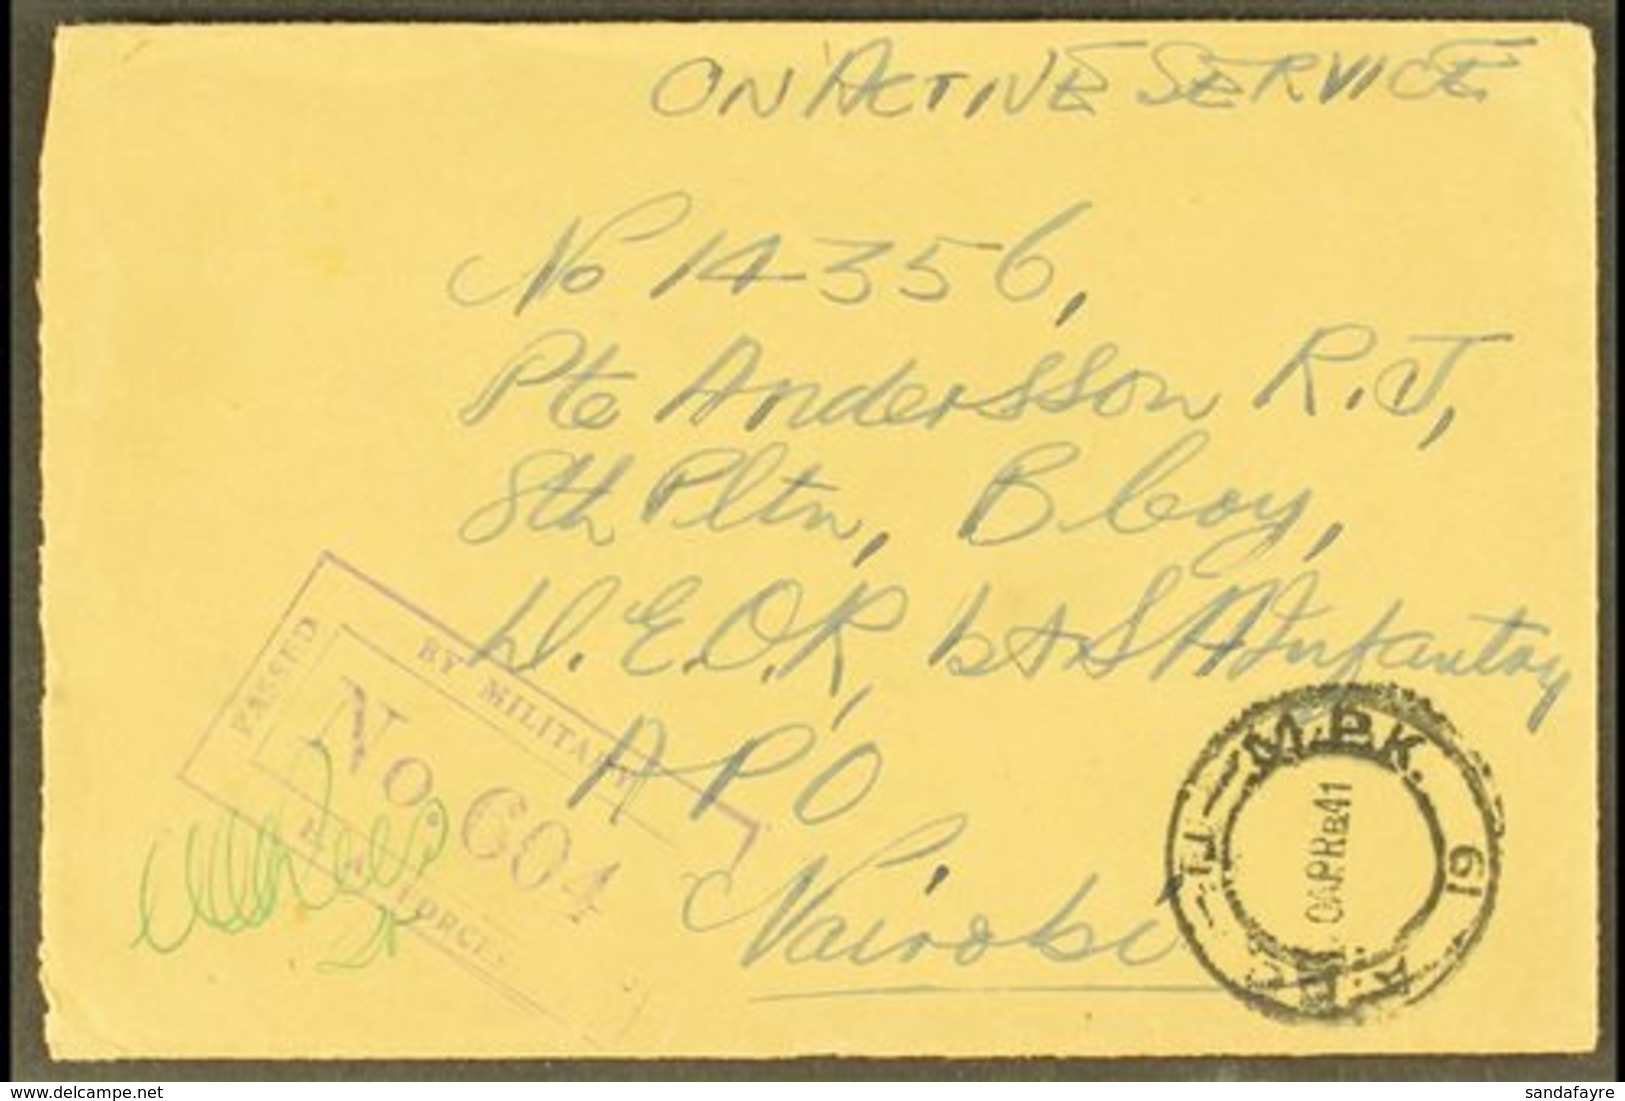 """1941 Stampless Envelope Endorsed """"On Active Service"""" And Posted To Kenya, Kismayu """"A.P.O. - U - M.P.K. 19"""" Postmark App - Somaliland (Protectorate ...-1959)"""